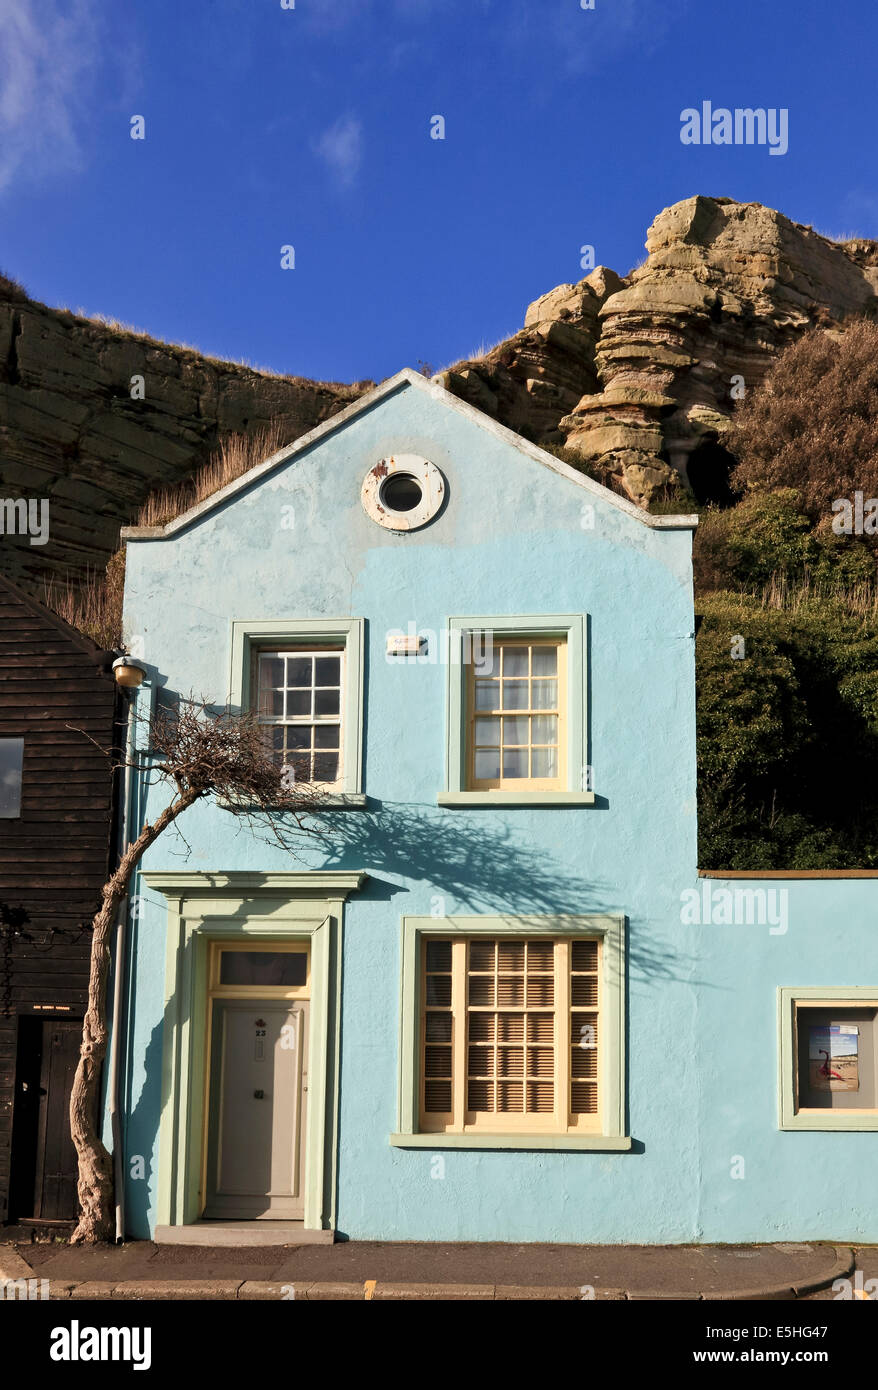 9521. House with tree, Rock a Nore, Hastings, East Sussex - Stock Image